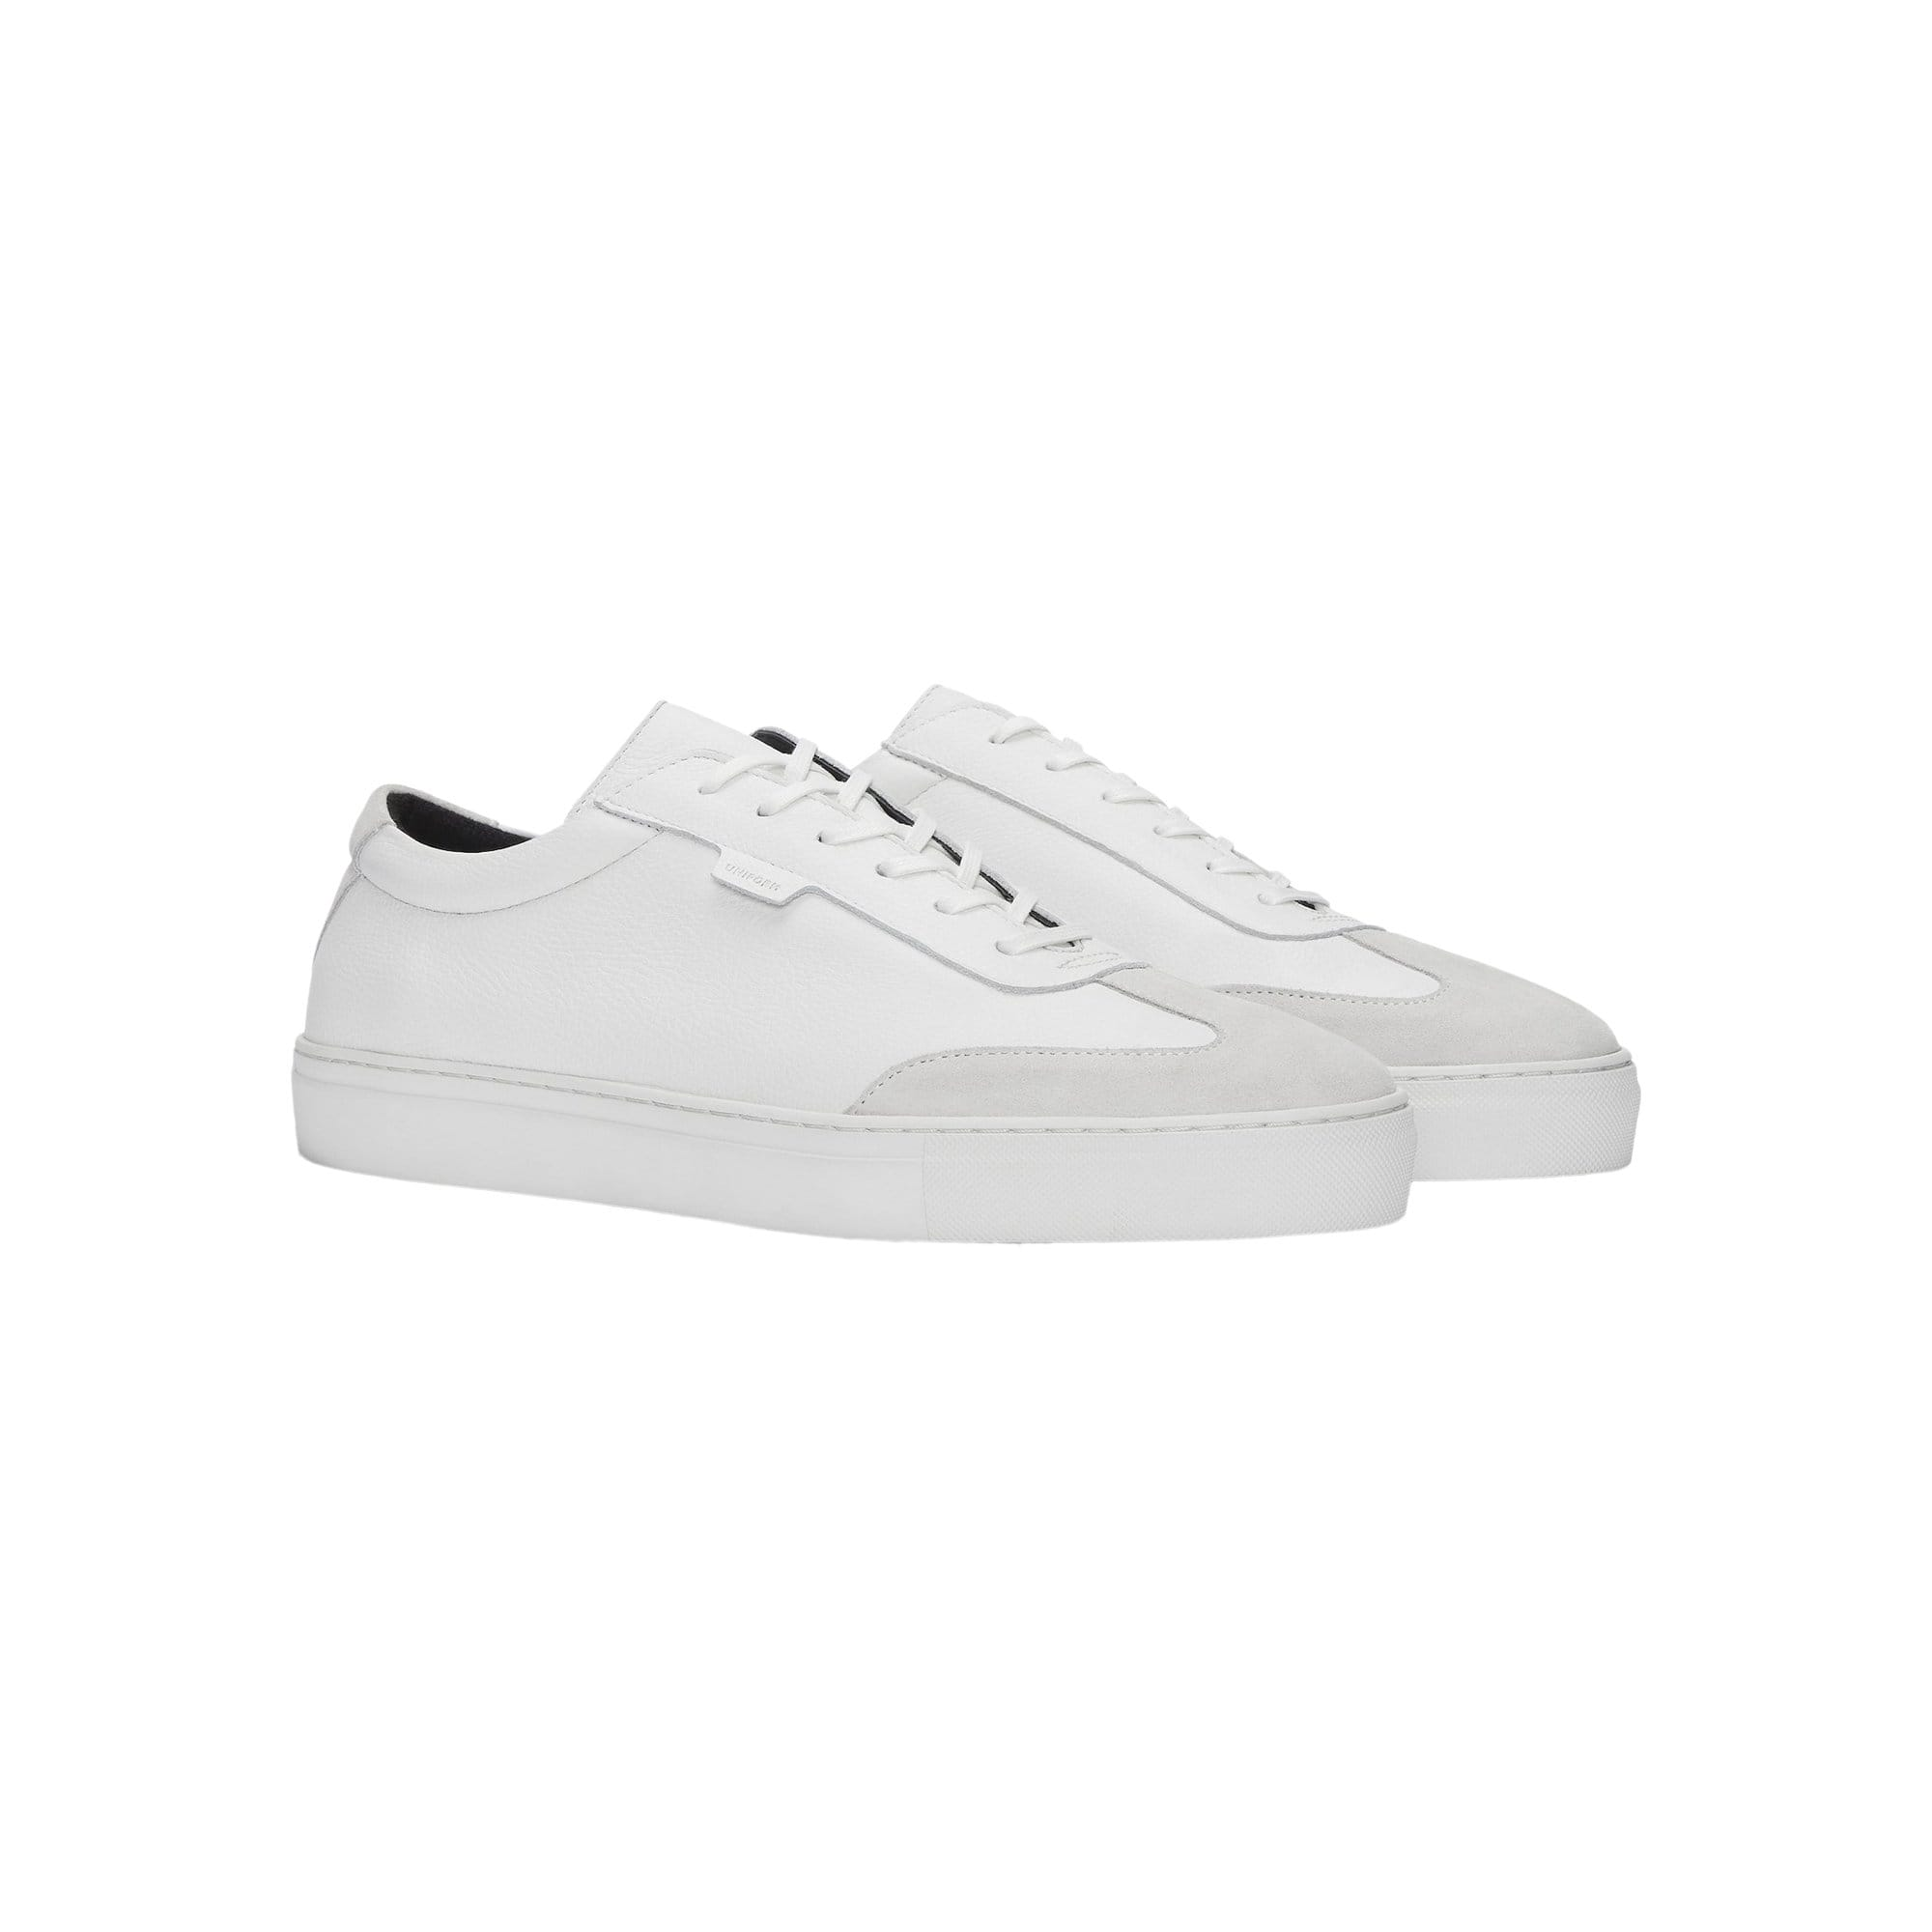 Series 3 White Tumbled Leather + Suede Sneaker